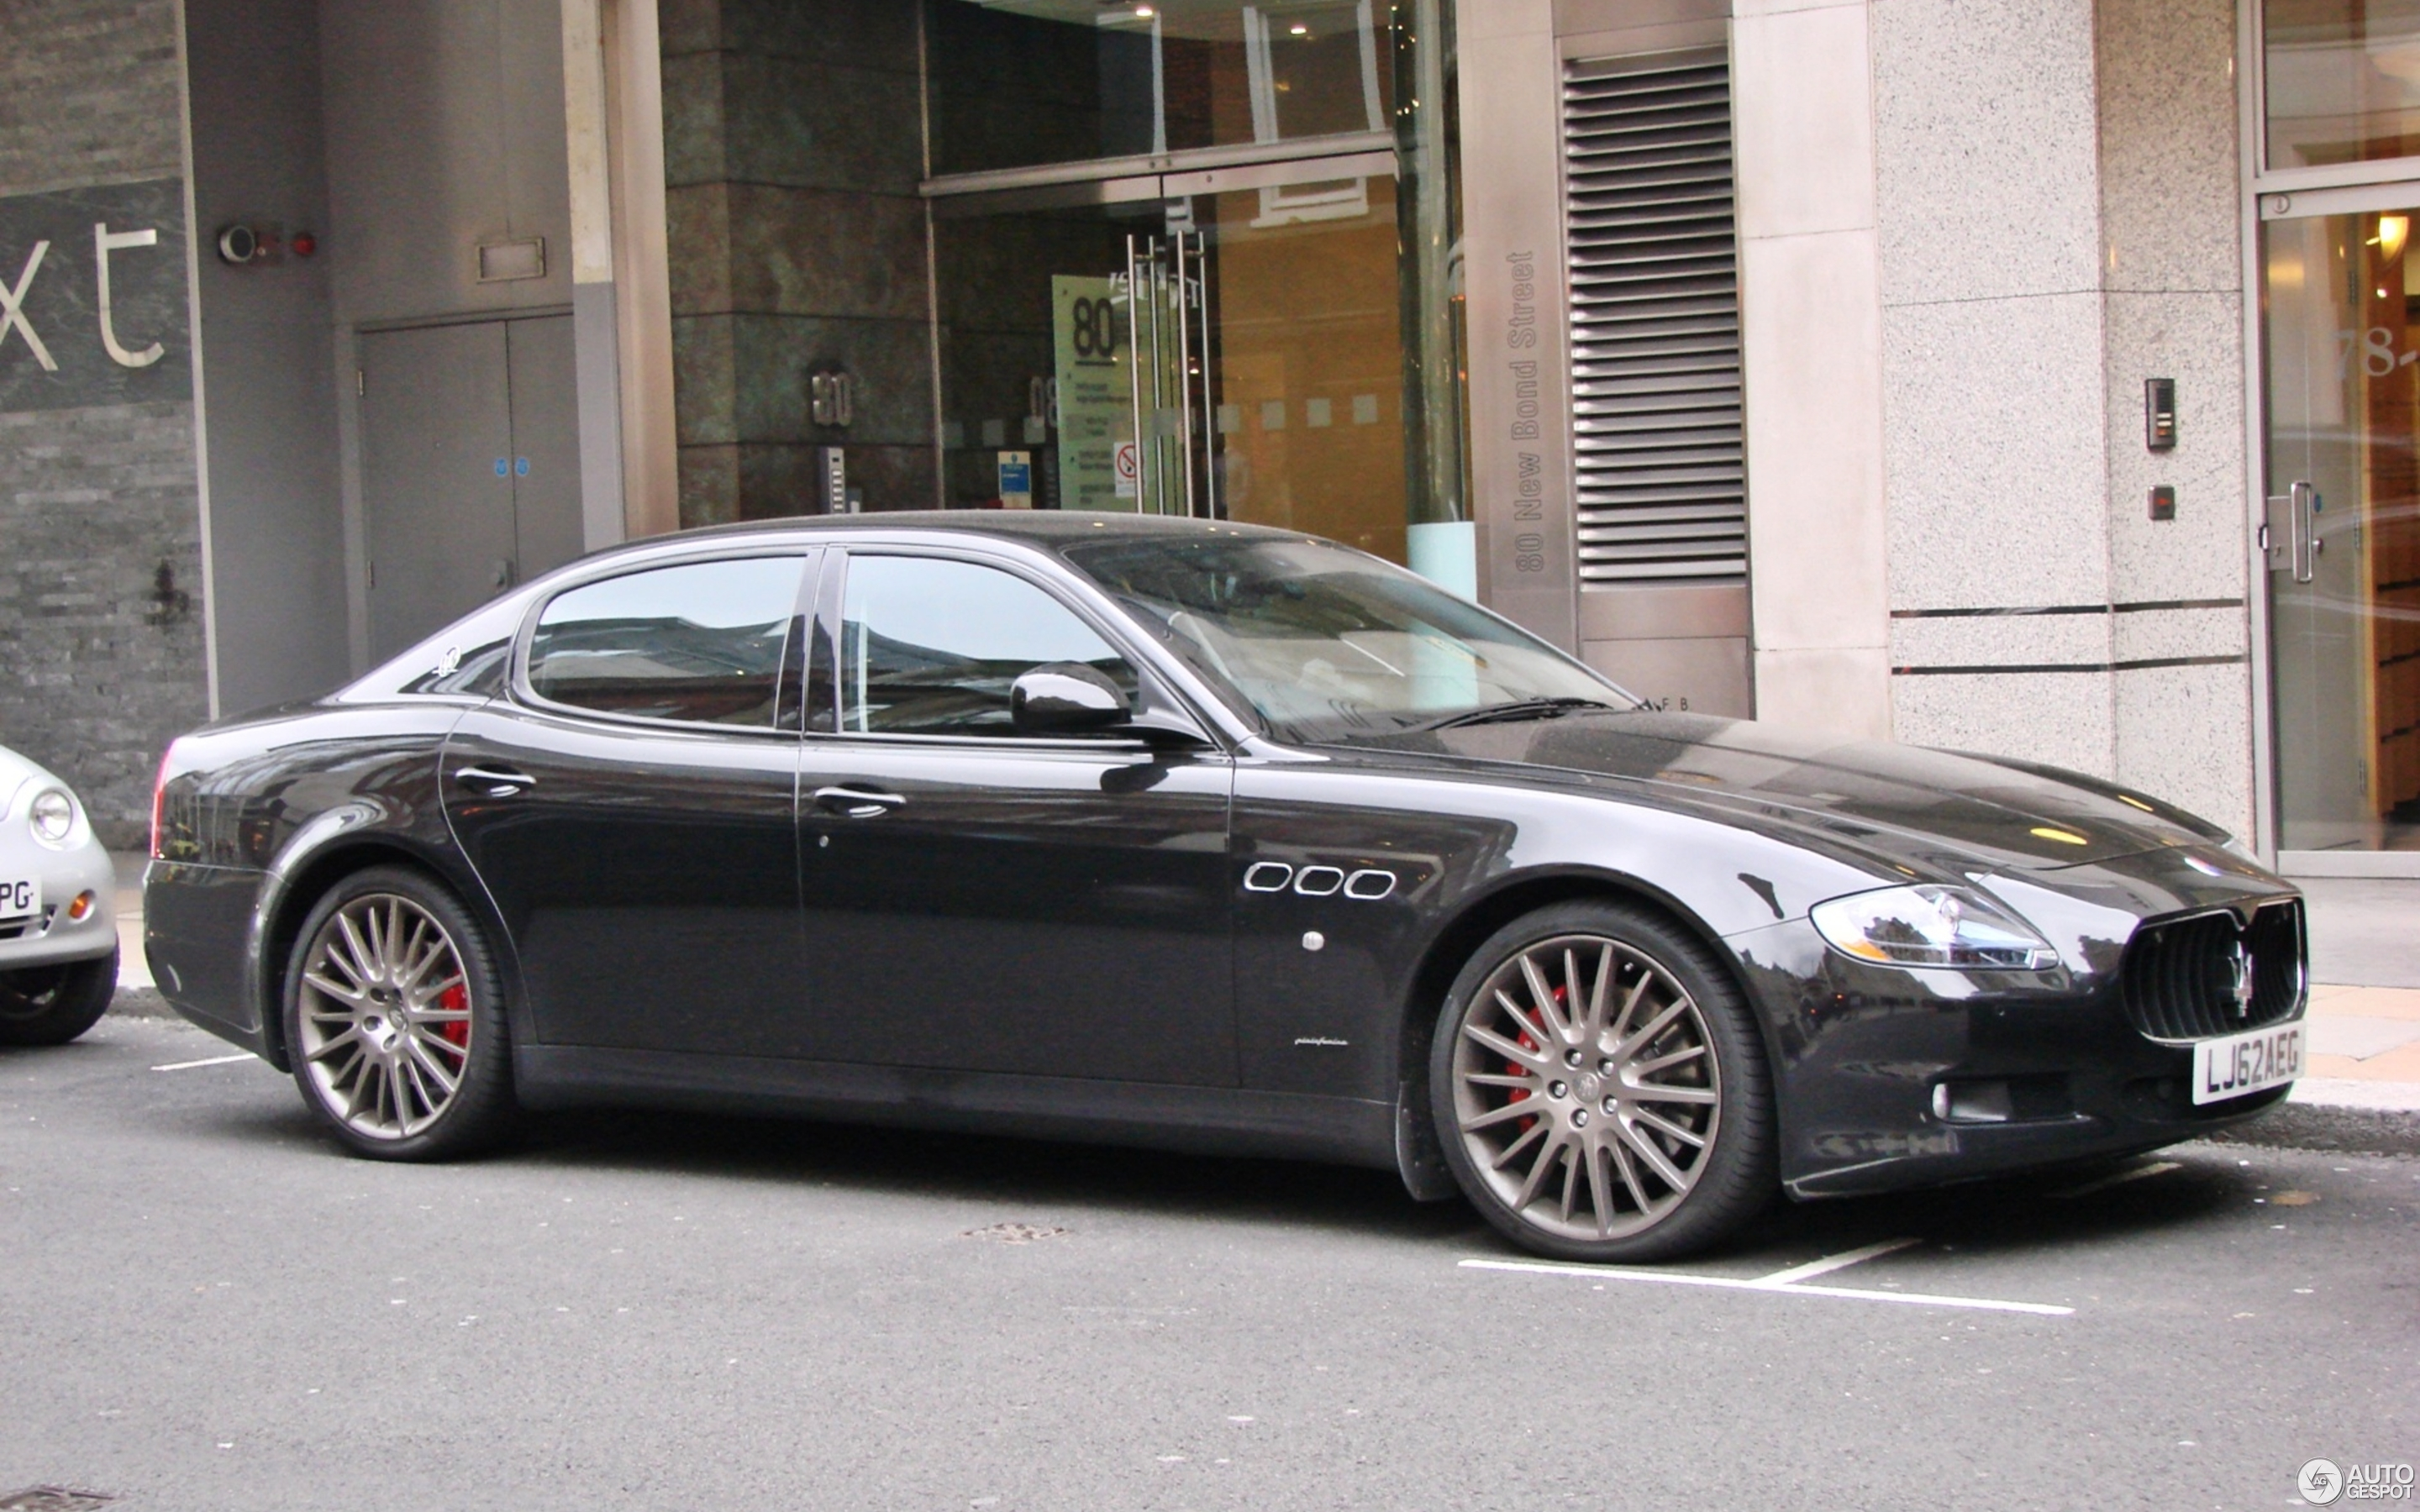 https://ag-spots-2013.o.auroraobjects.eu/2013/05/26/other/2880-1800-crop-maserati-quattroporte-sport-gt-s-2009-c823326052013192828_1.jpg